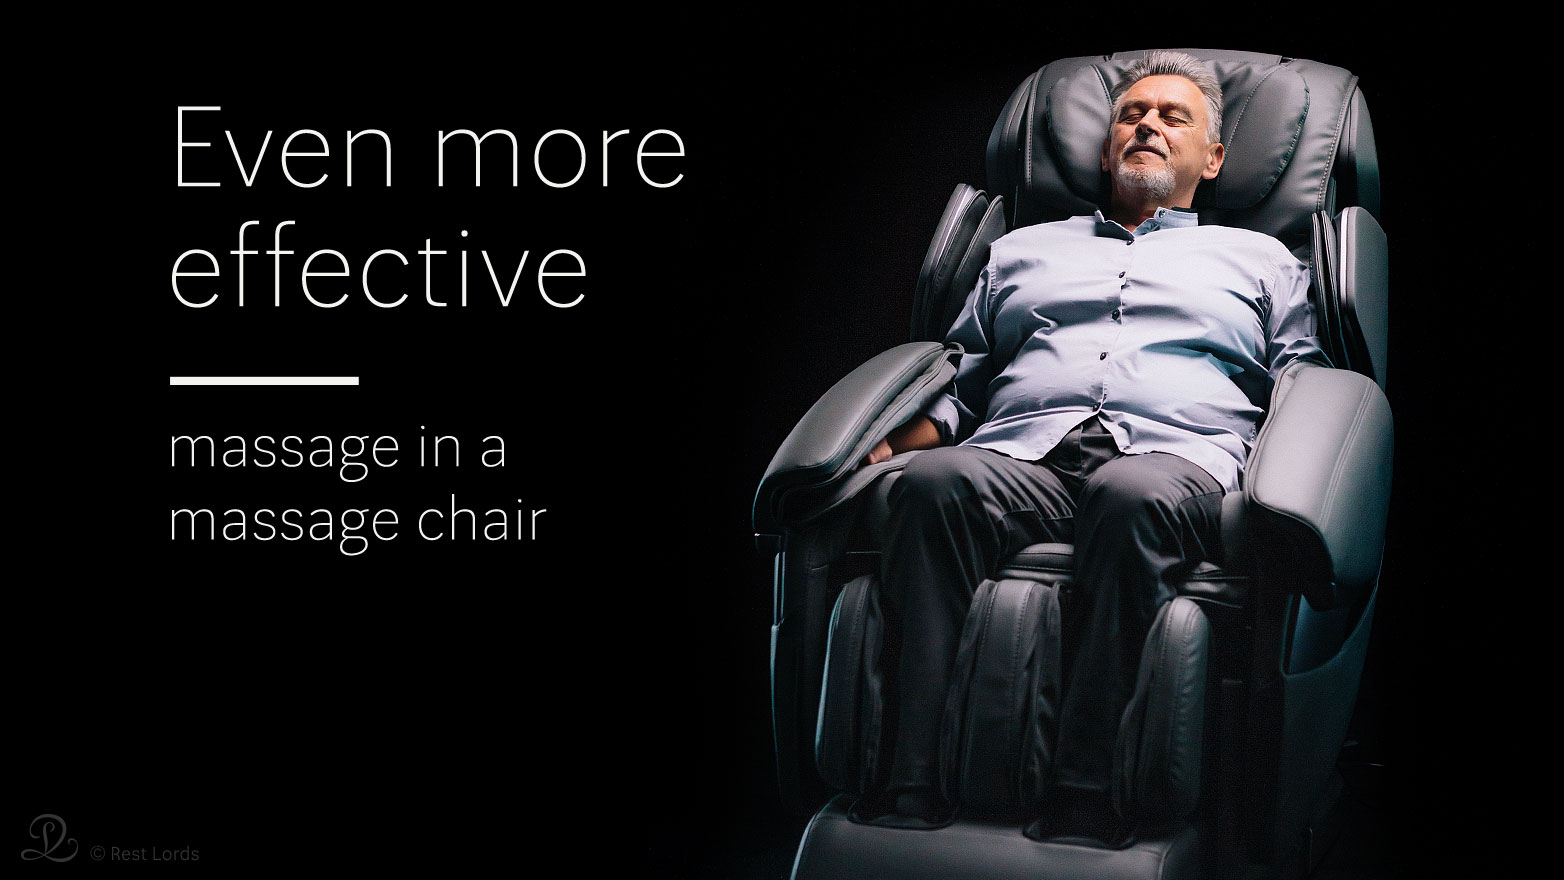 Even more effective massage in massage chair